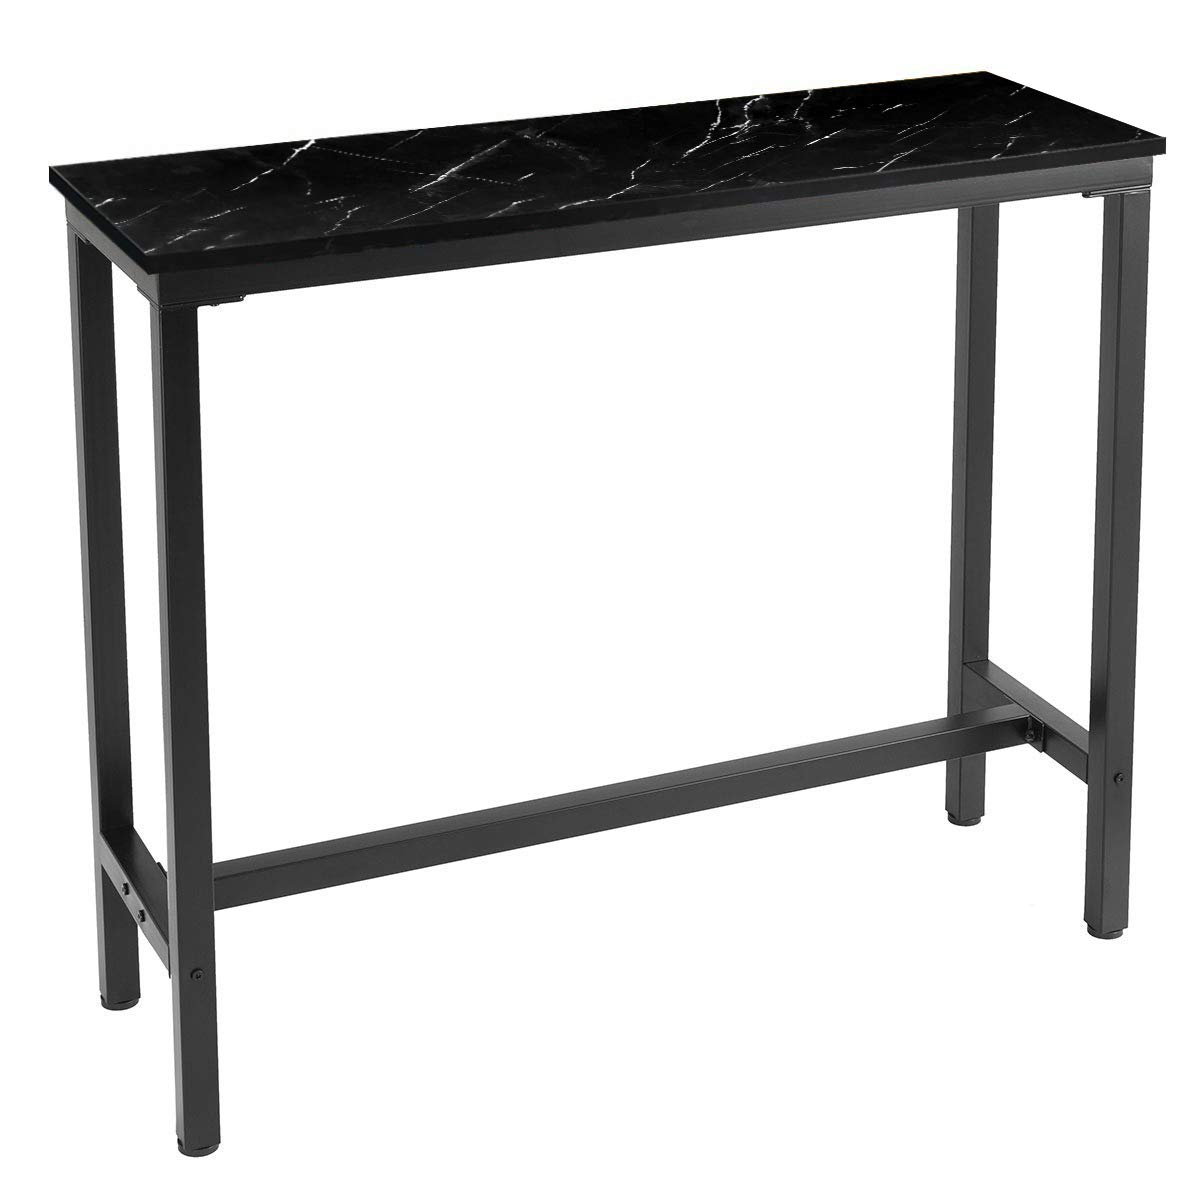 Mr IRONSTONE 47'' Pub Dining Table, Bar Height Table with Faux Marble Top (Indoor USE ONLY) by Mr IRONSTONE